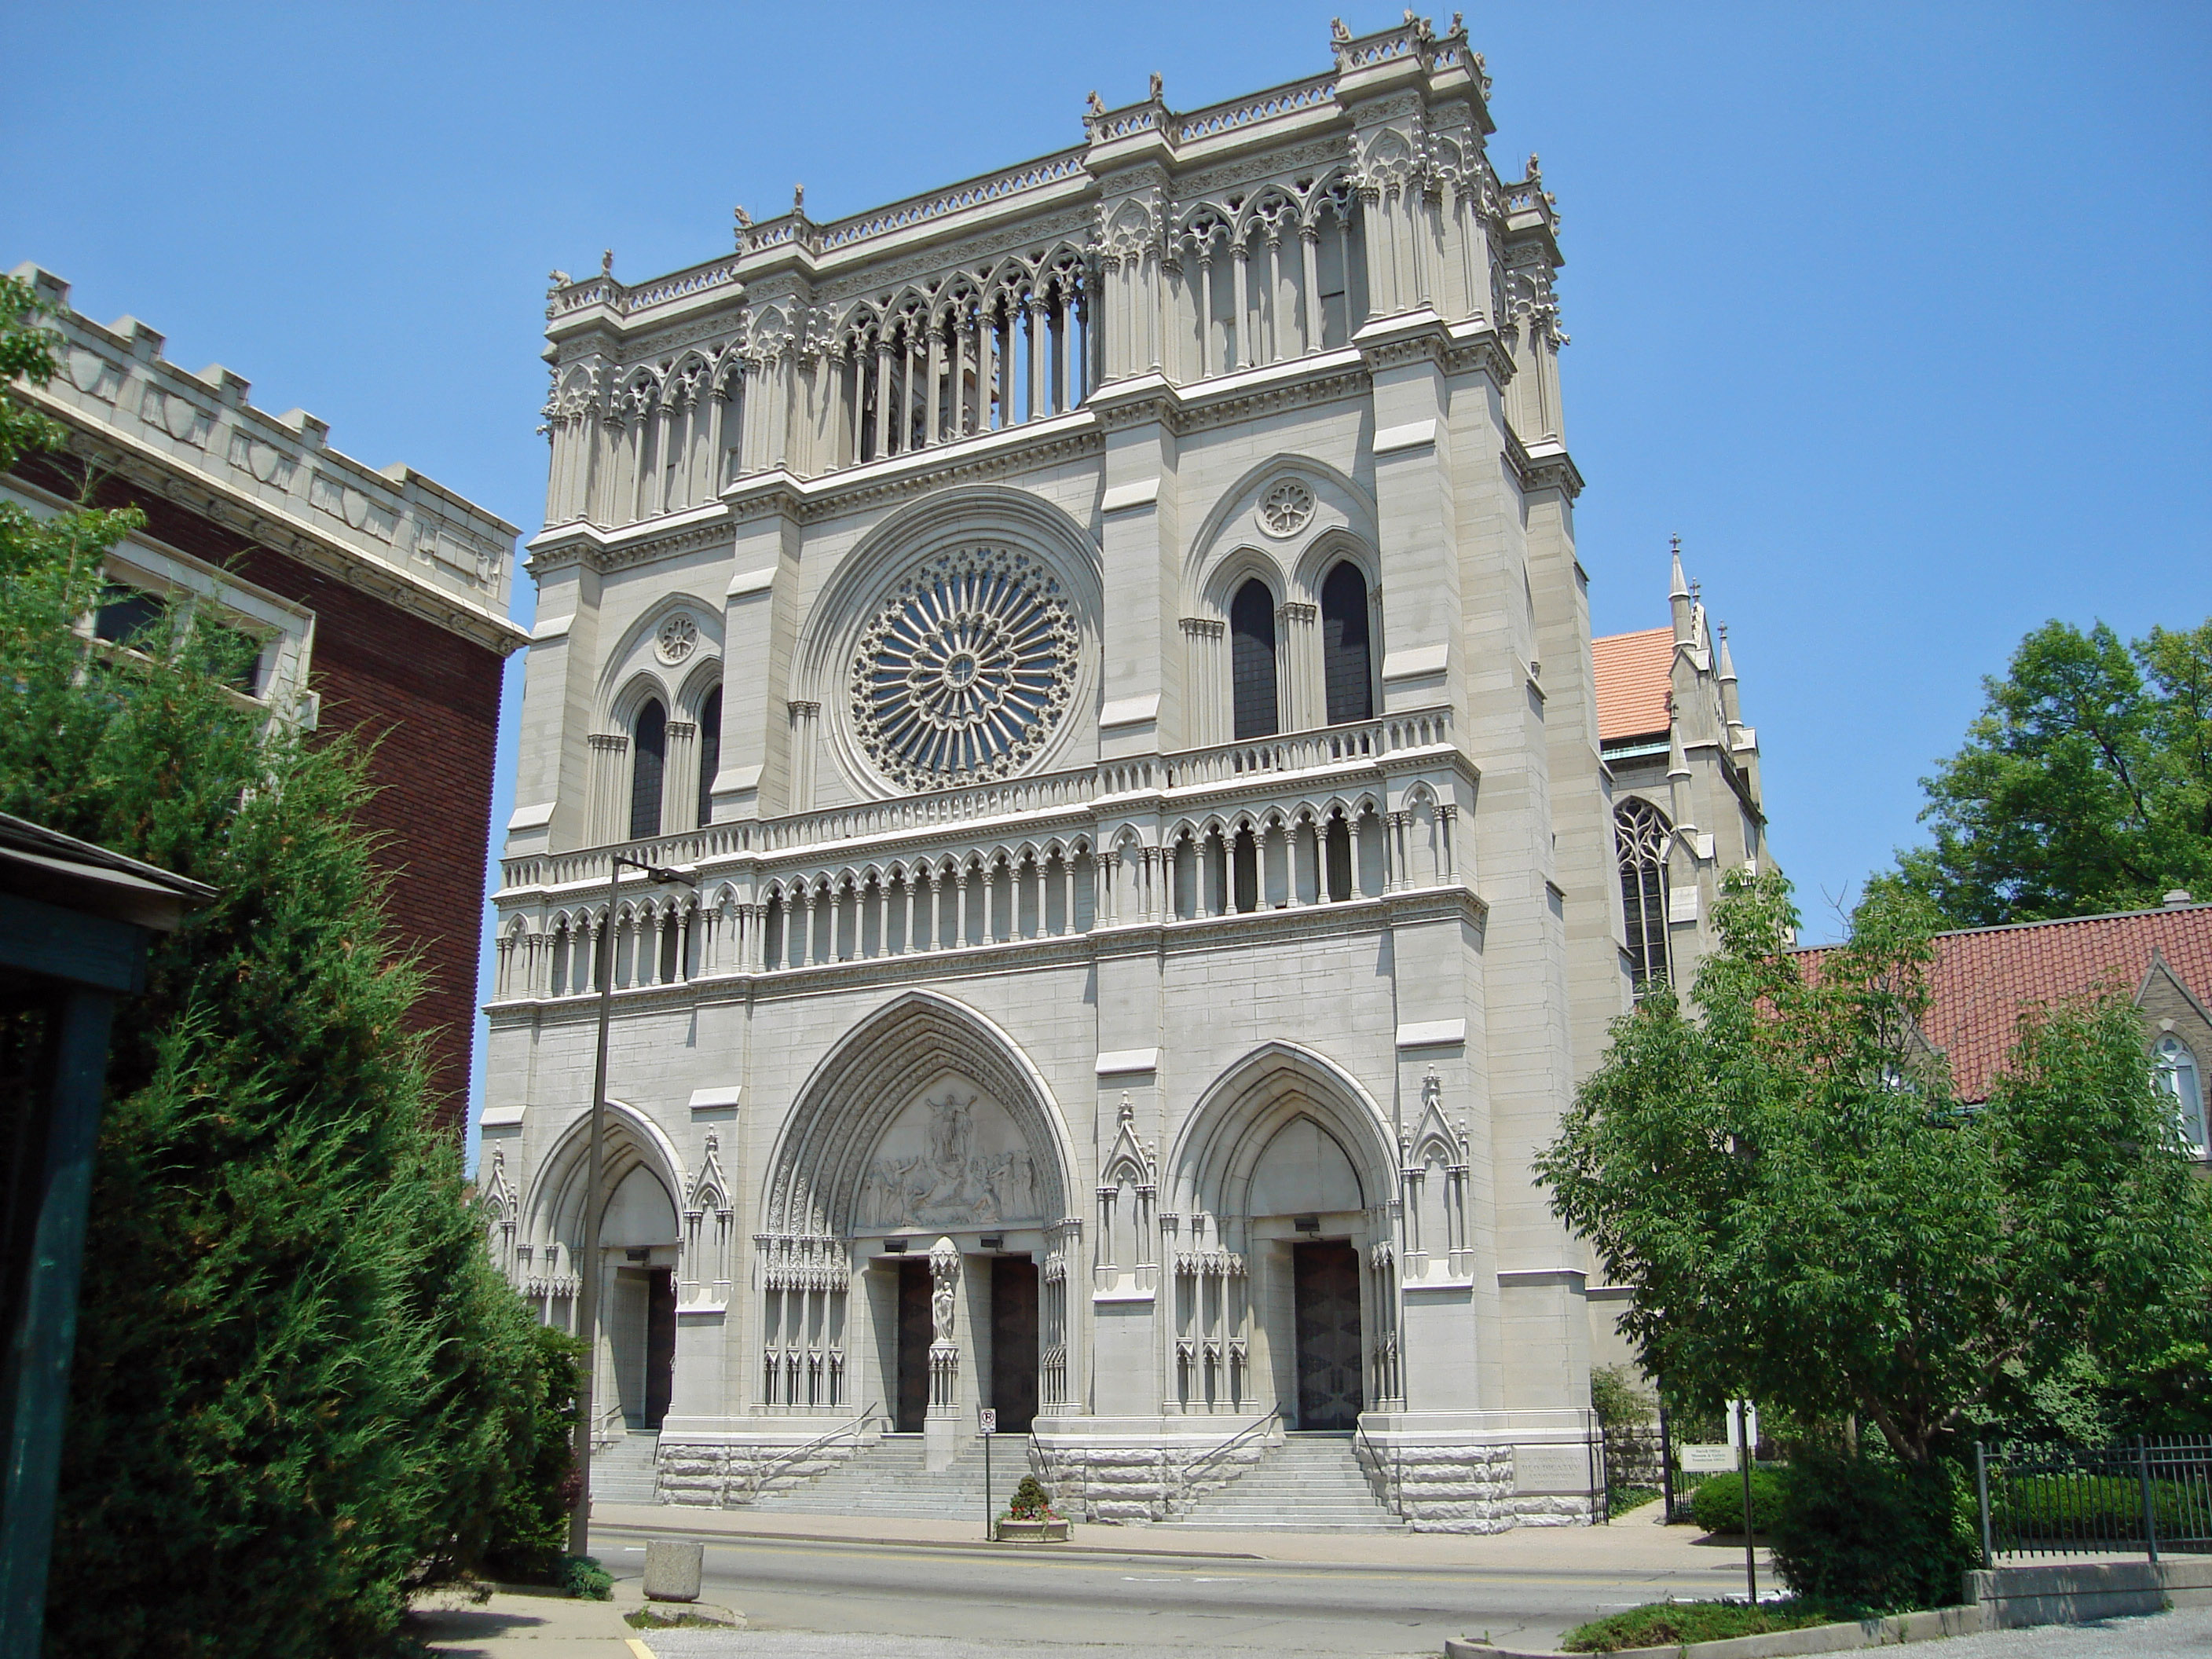 File:St. Marys Cathedral Basilica of the Assumption in ...